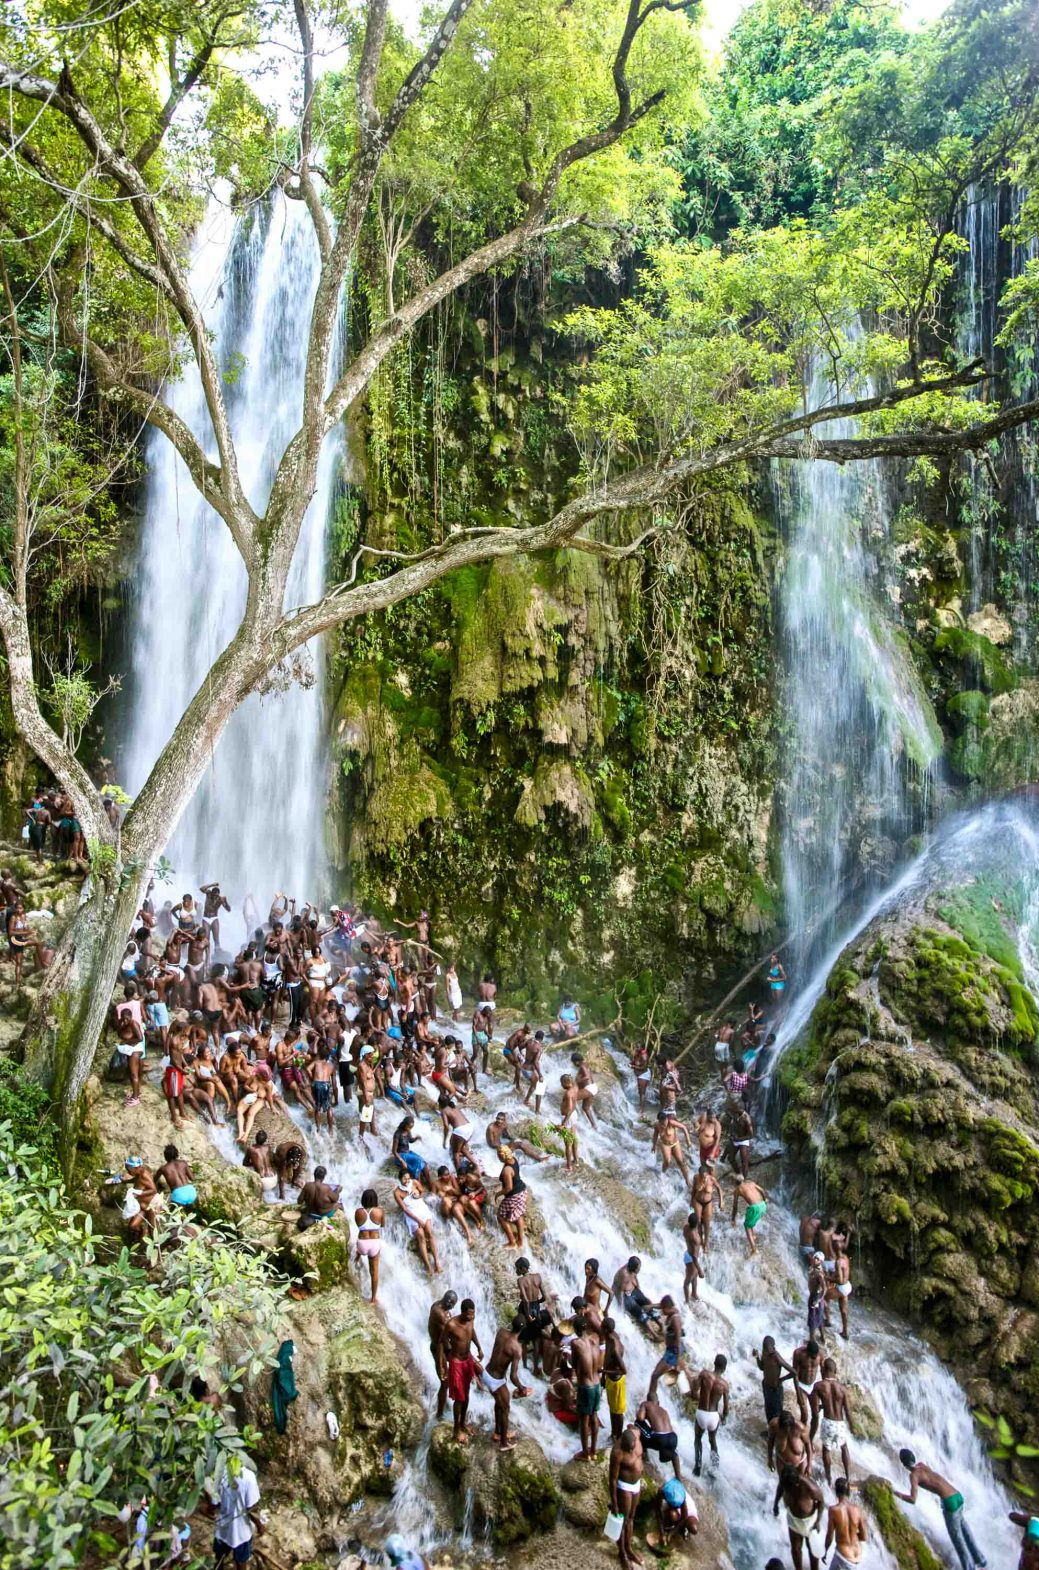 Crowds of Vodou practitioners worship beneath the Saut d'Eau waterfall during a Vodou festival in Haiti.